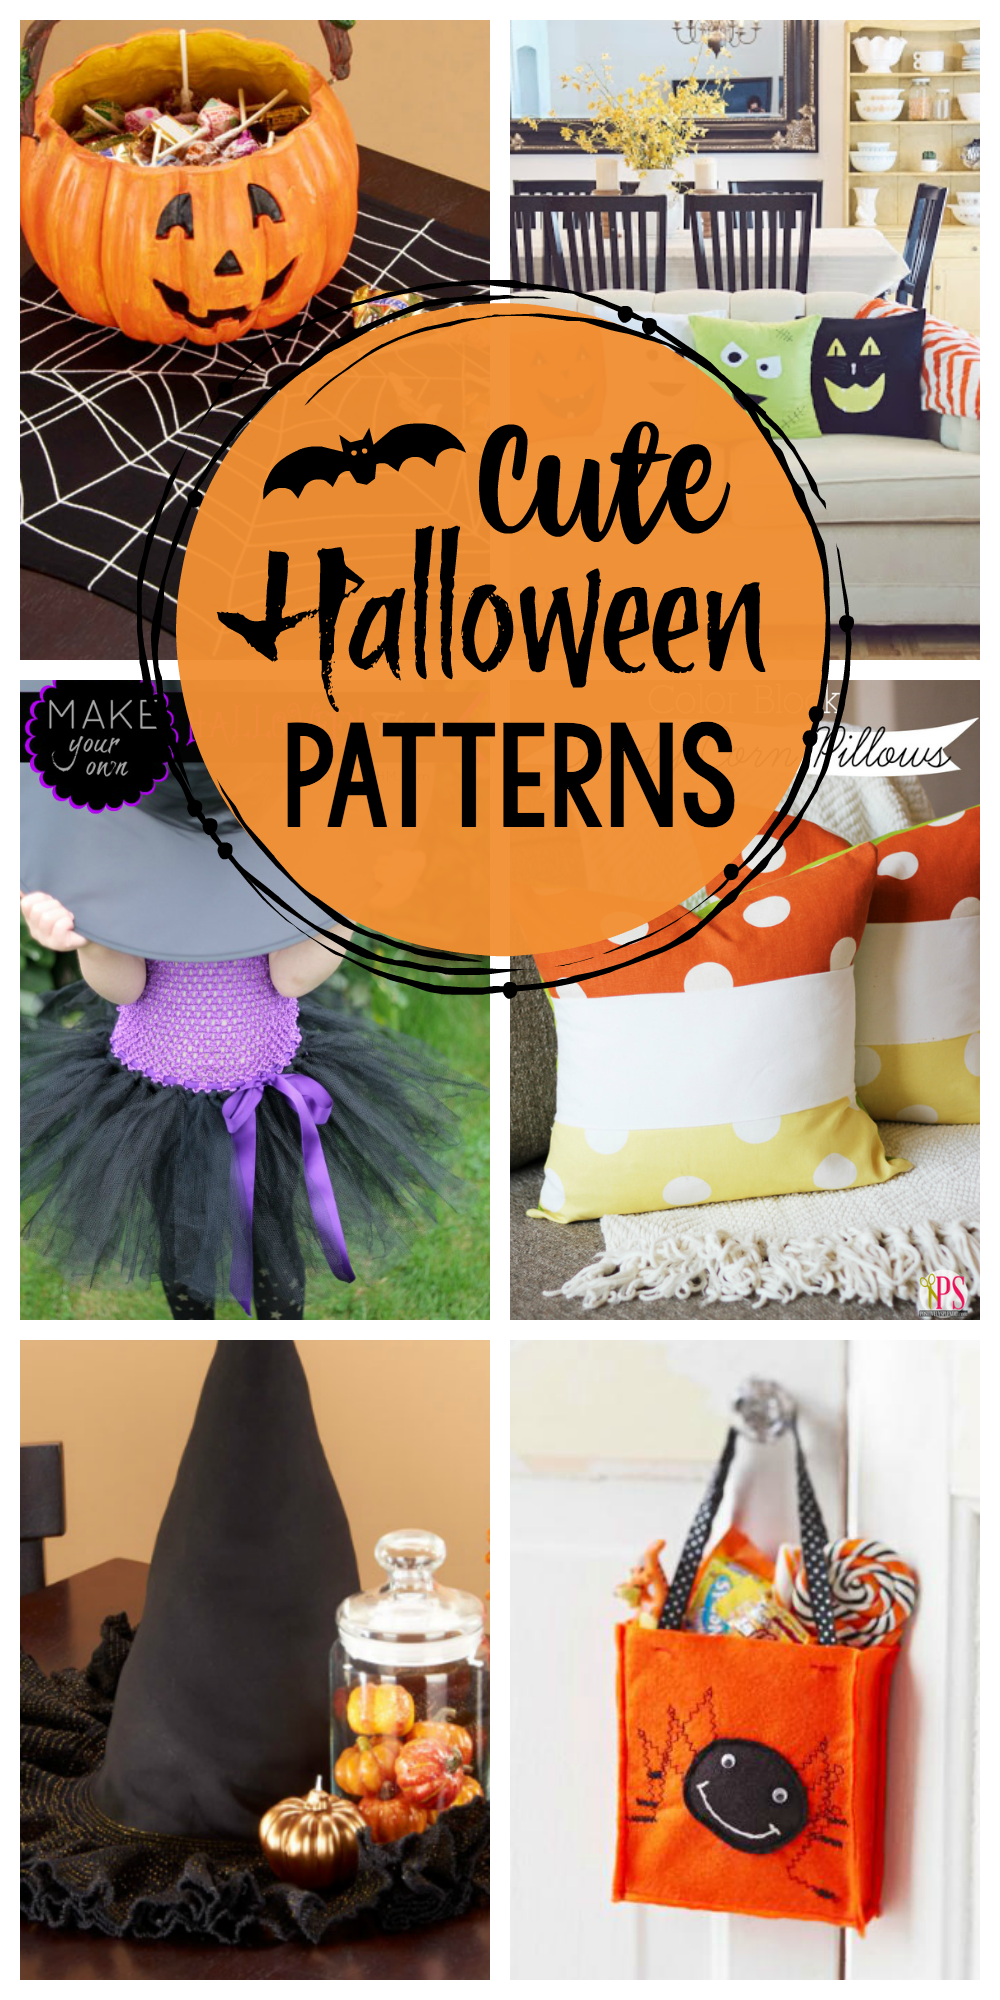 Halloween Patterns to Sew this year-So many cute Halloween patterns for Halloween decor, aprons, decor, costumes and more! #Halloween #sew #sewing #pattern